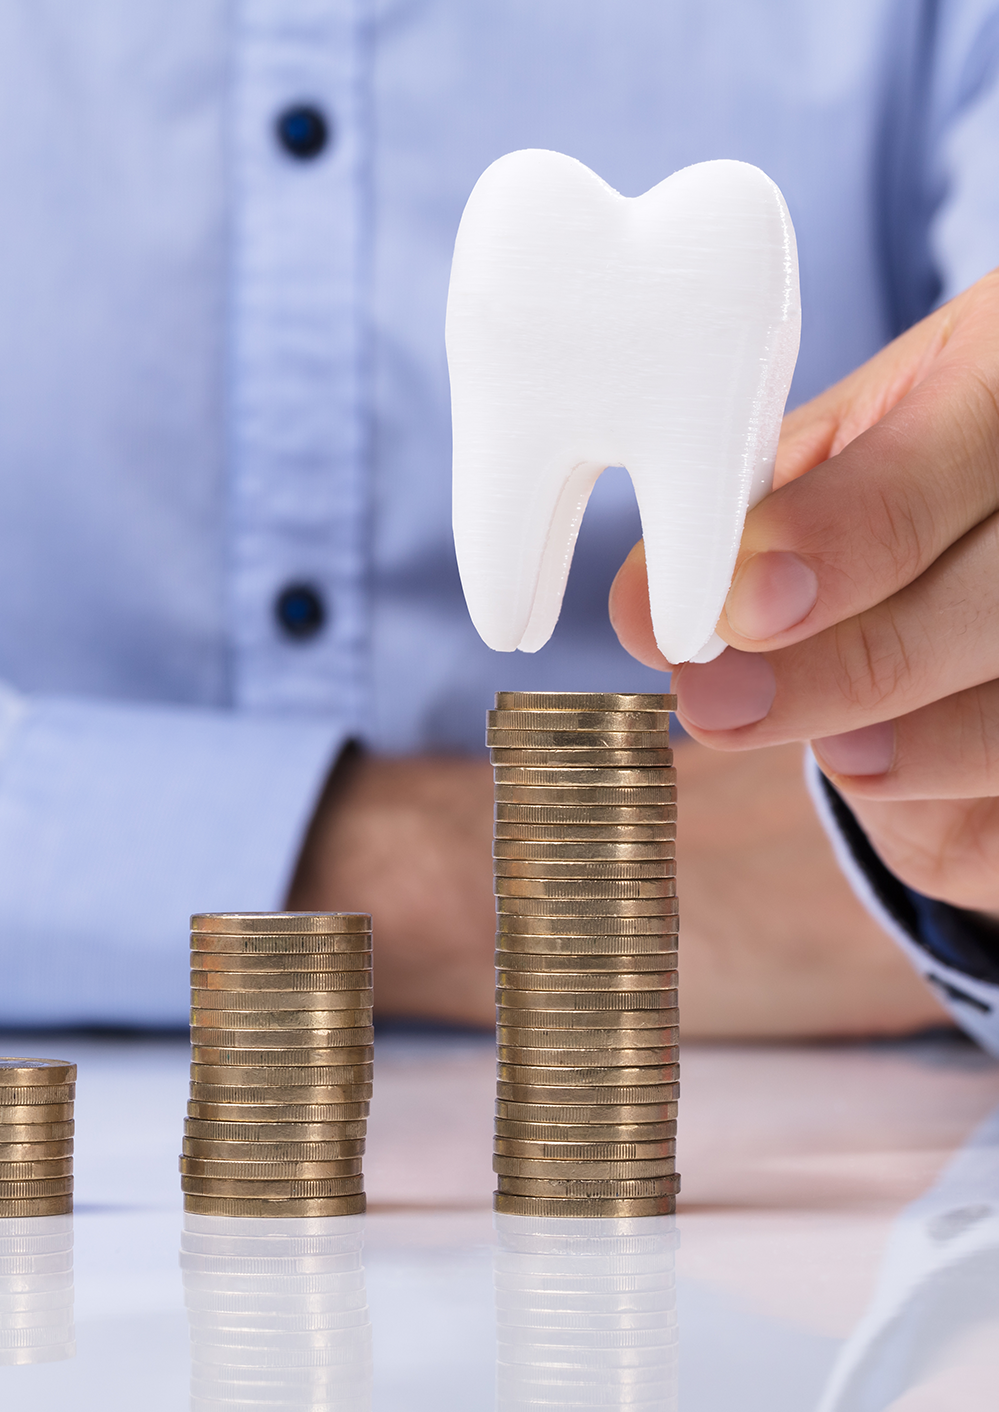 Dental accountant placing model tooth on stack of coins